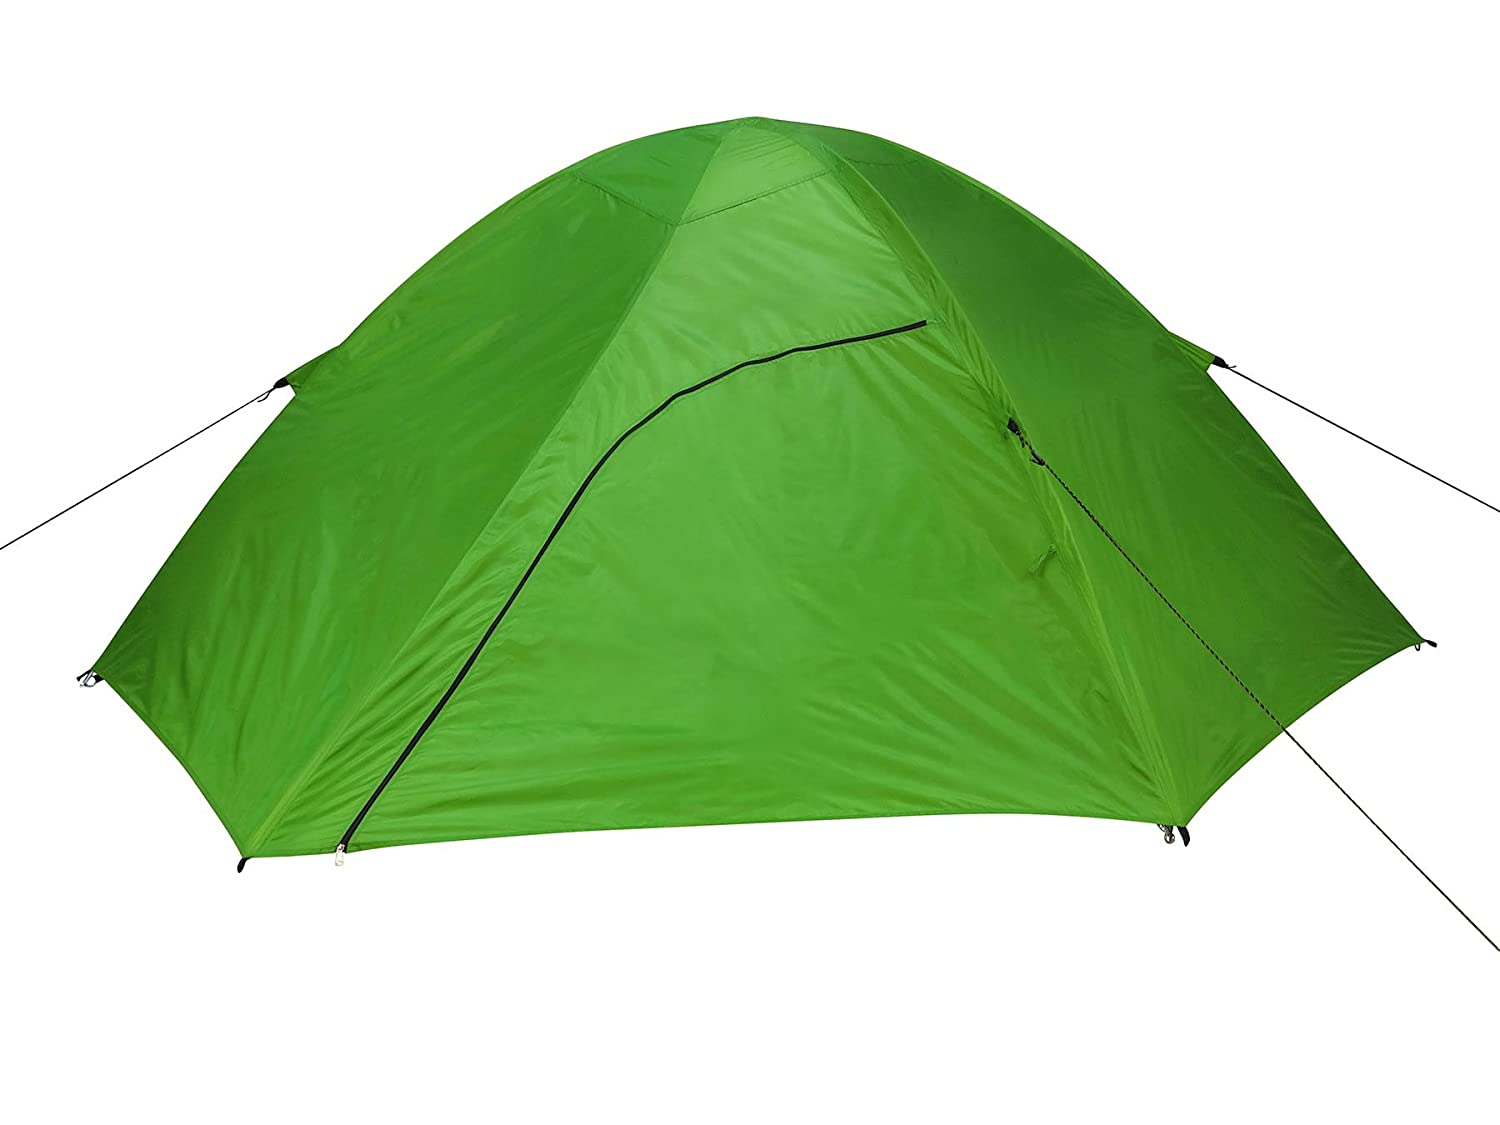 GigaTent 5 x 8 3 season 2-3 Person 2-3 Person Camping Tent Spacious Lightweight, Heavy Duty Weather and Flame Resistant Outdoor Hiking Gear Backpacking Tent